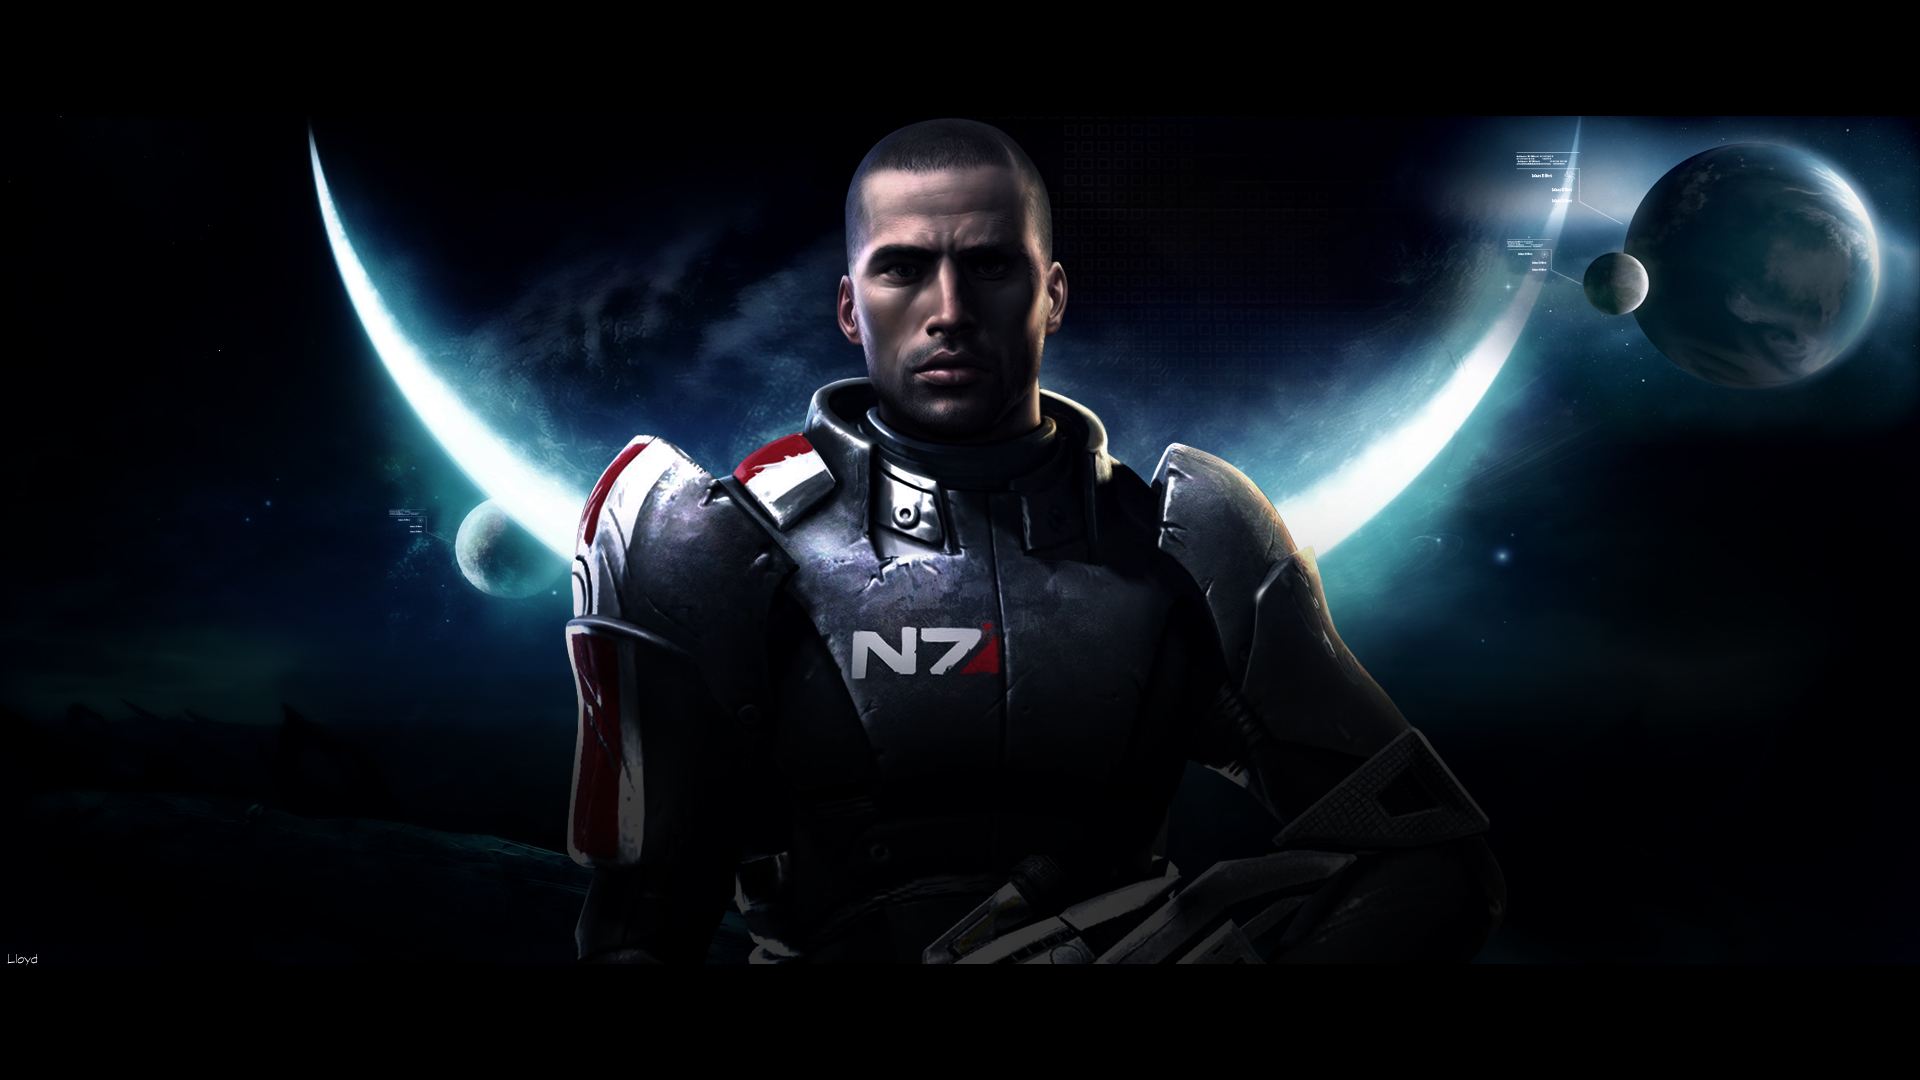 Indoctrination >> Mass Effect 3: The True Logic Behind The Ending | PhcityonWeb